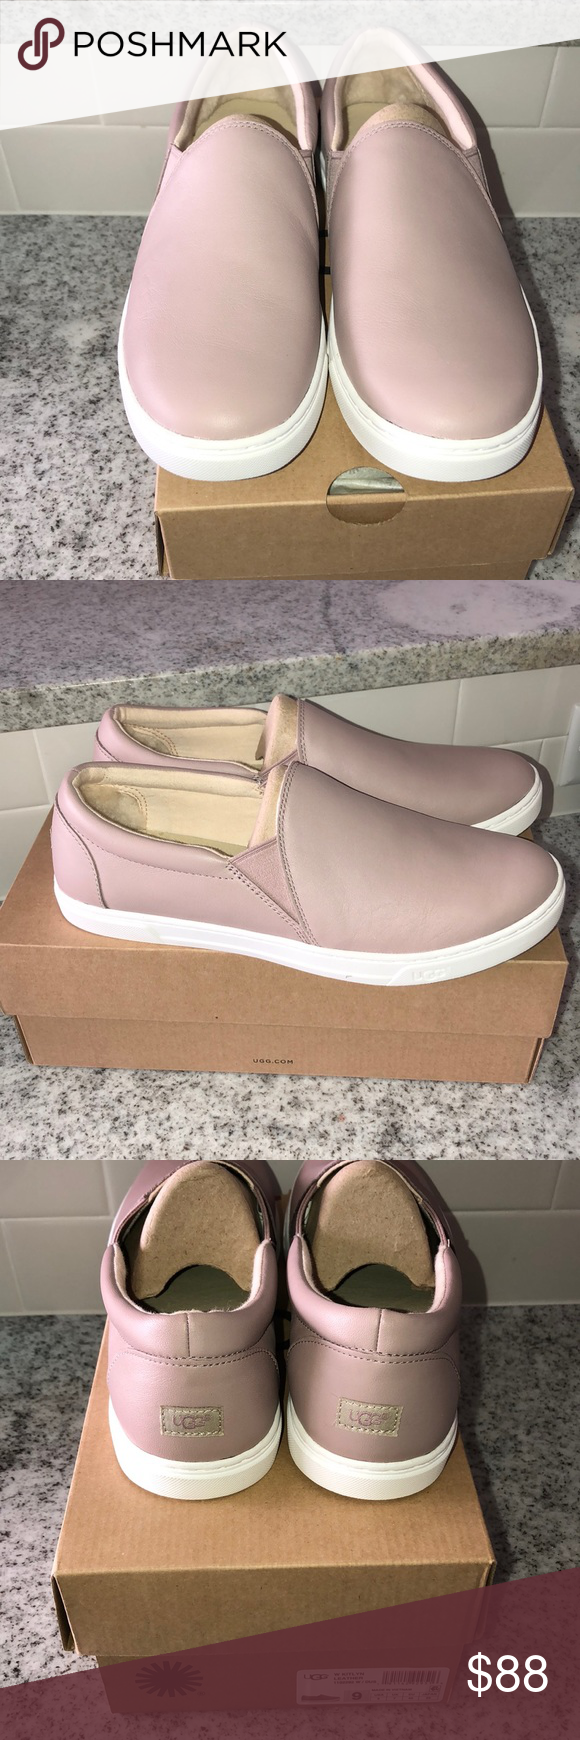 338eb19f664 UGG Shoes | Ugh Kitlyn Slip On Sneakers | Color: Pink | Size: 9 | My ...